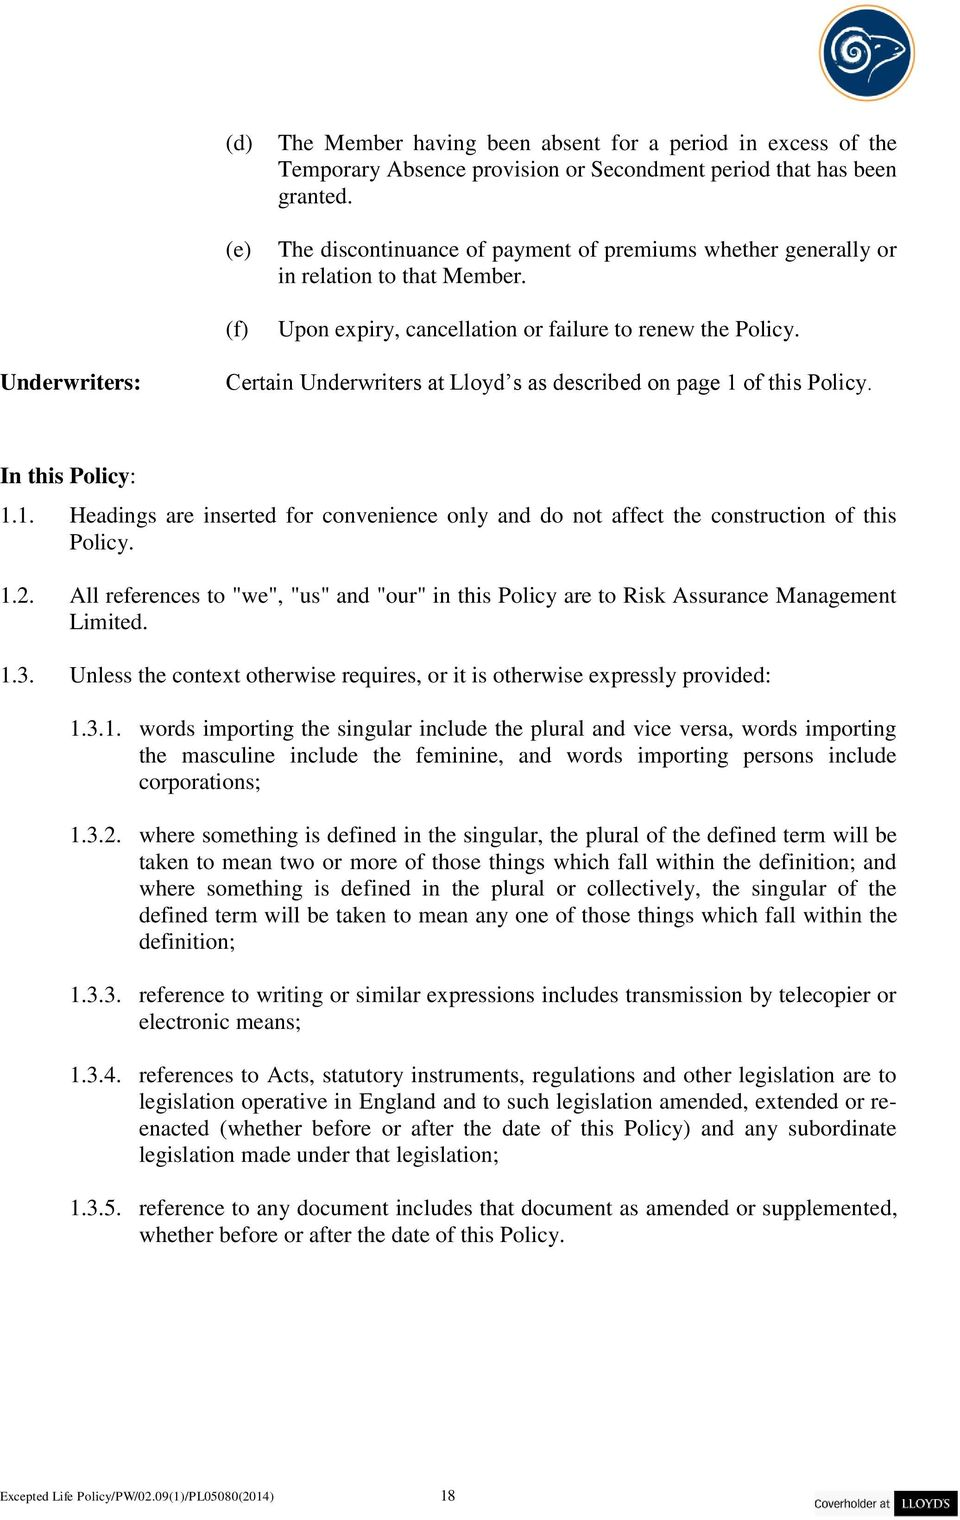 Underwriters: Certain Underwriters at Lloyd s as described on page 1 of this Policy. In this Policy: 1.1. Headings are inserted for convenience only and do not affect the construction of this Policy.